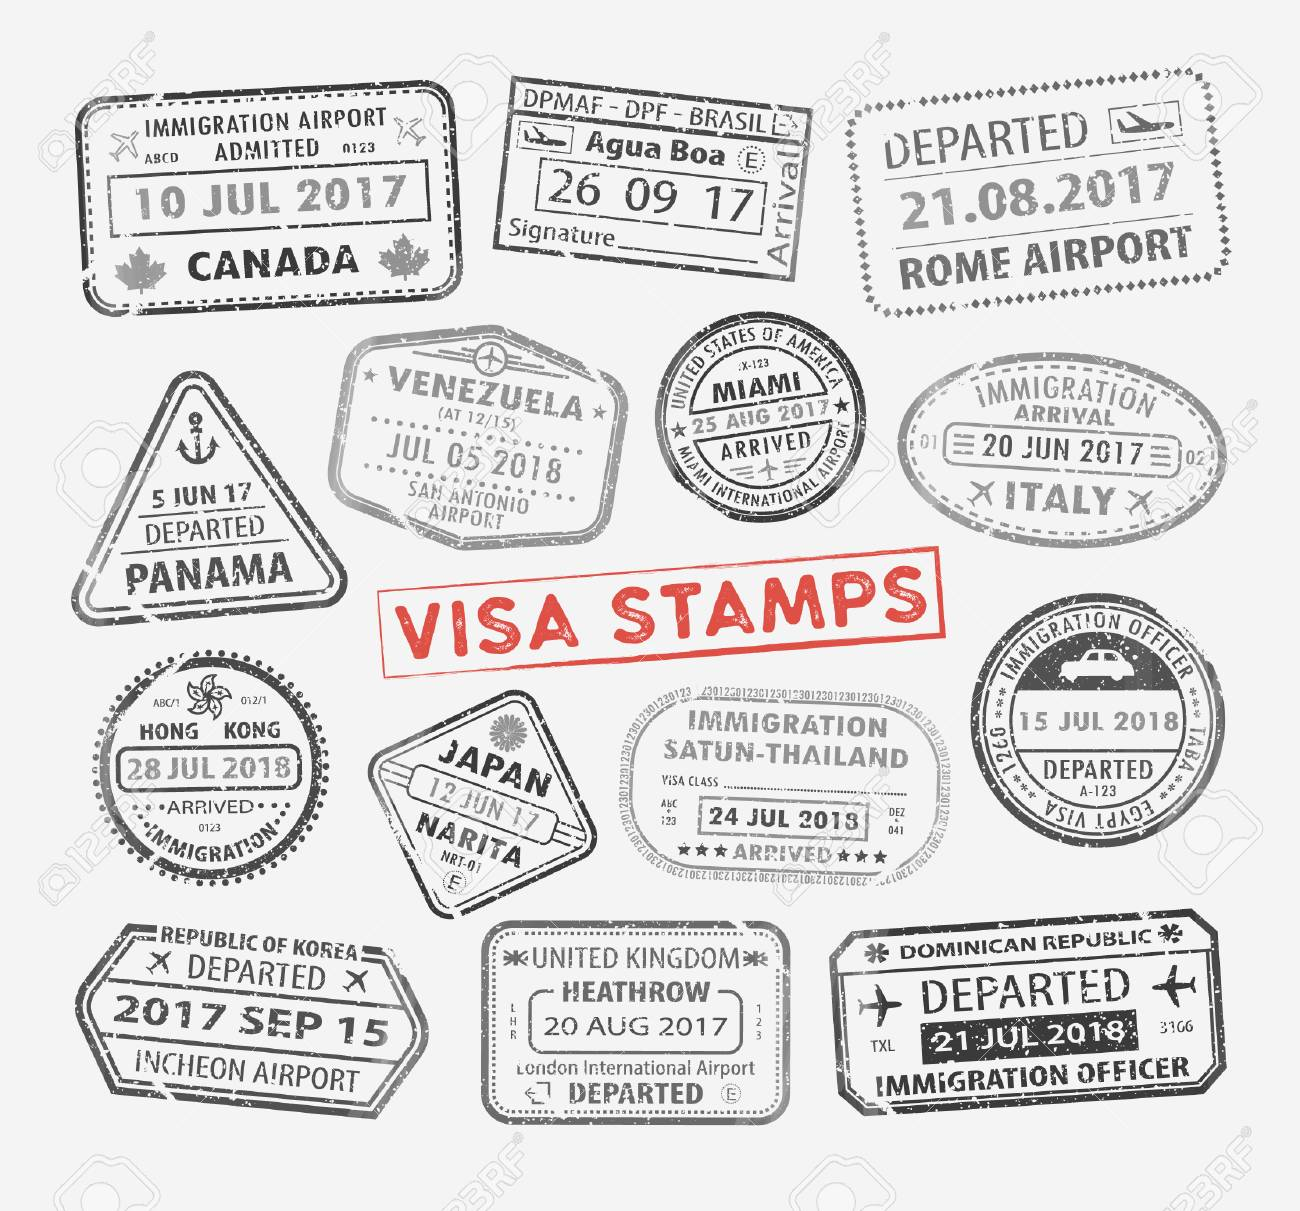 Isolated Set Of Visa Passport Stamp For Travel To Canada Or Usa Royalty Free Cliparts Vectors And Stock Illustration Image 121646175